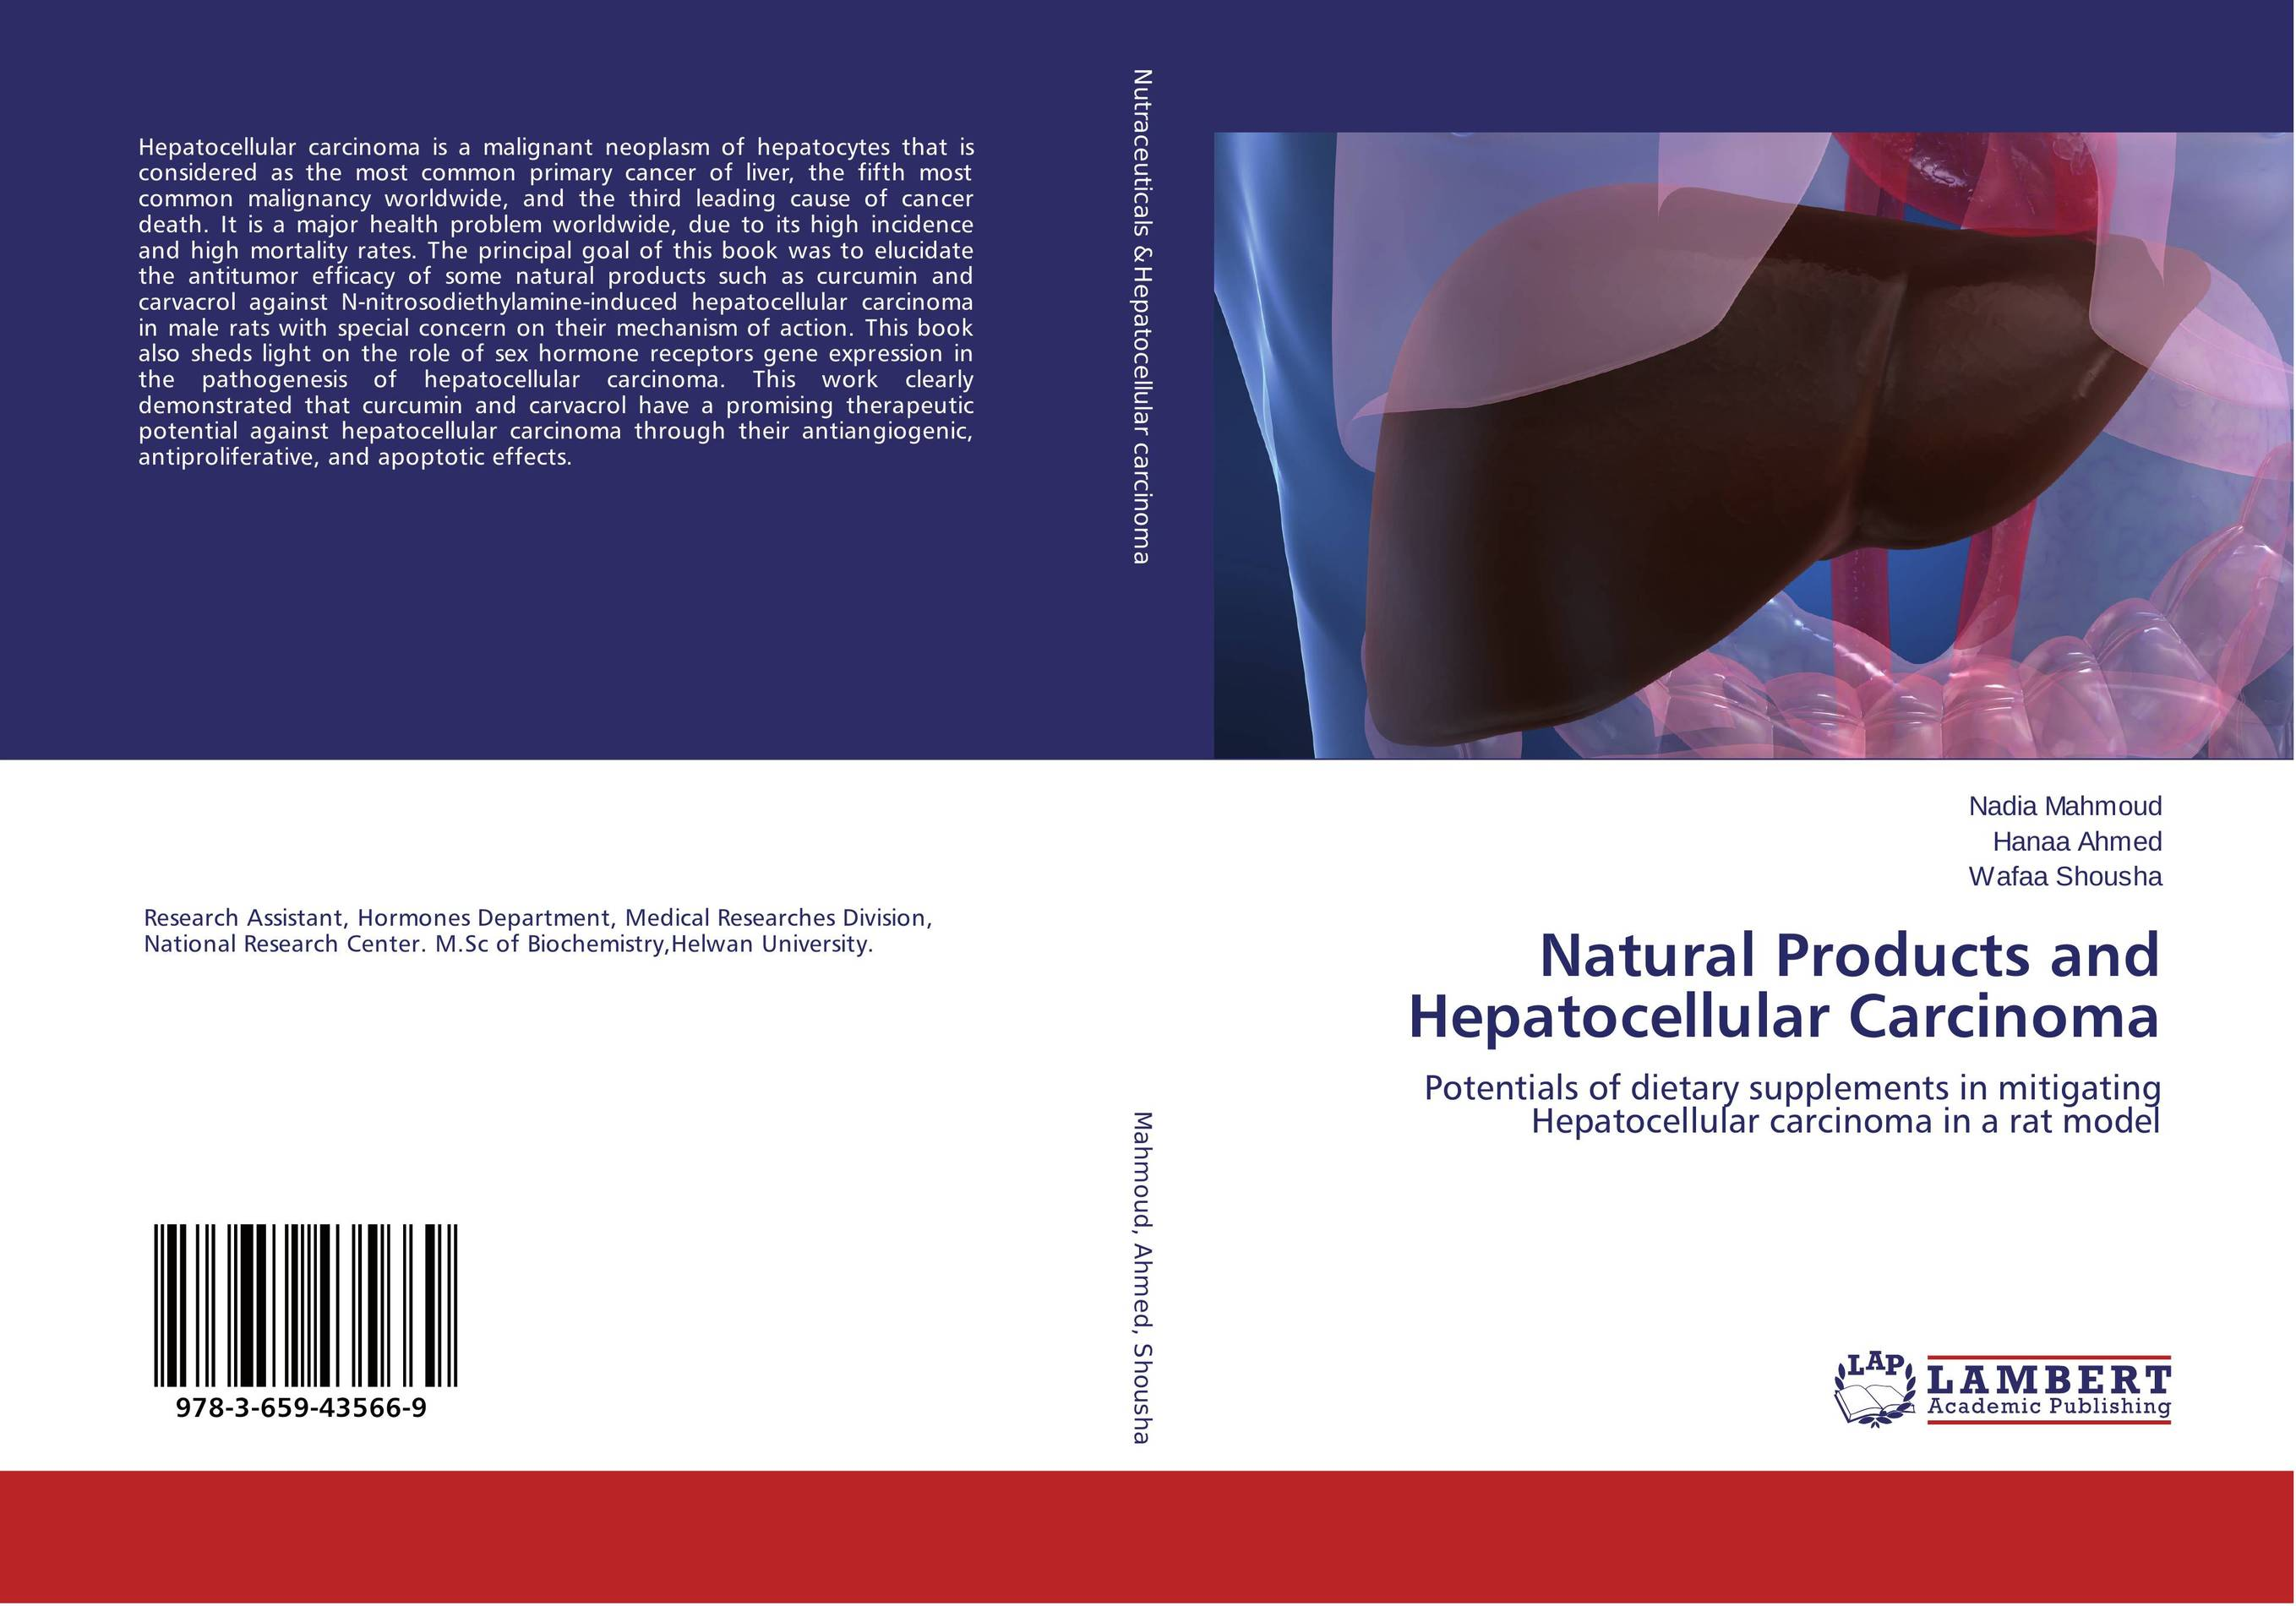 Natural Products and Hepatocellular Carcinoma hoda abd el moety amr abdel moety and perihan salem nitric oxide before and after local rfa for hepatocellular carcinoma